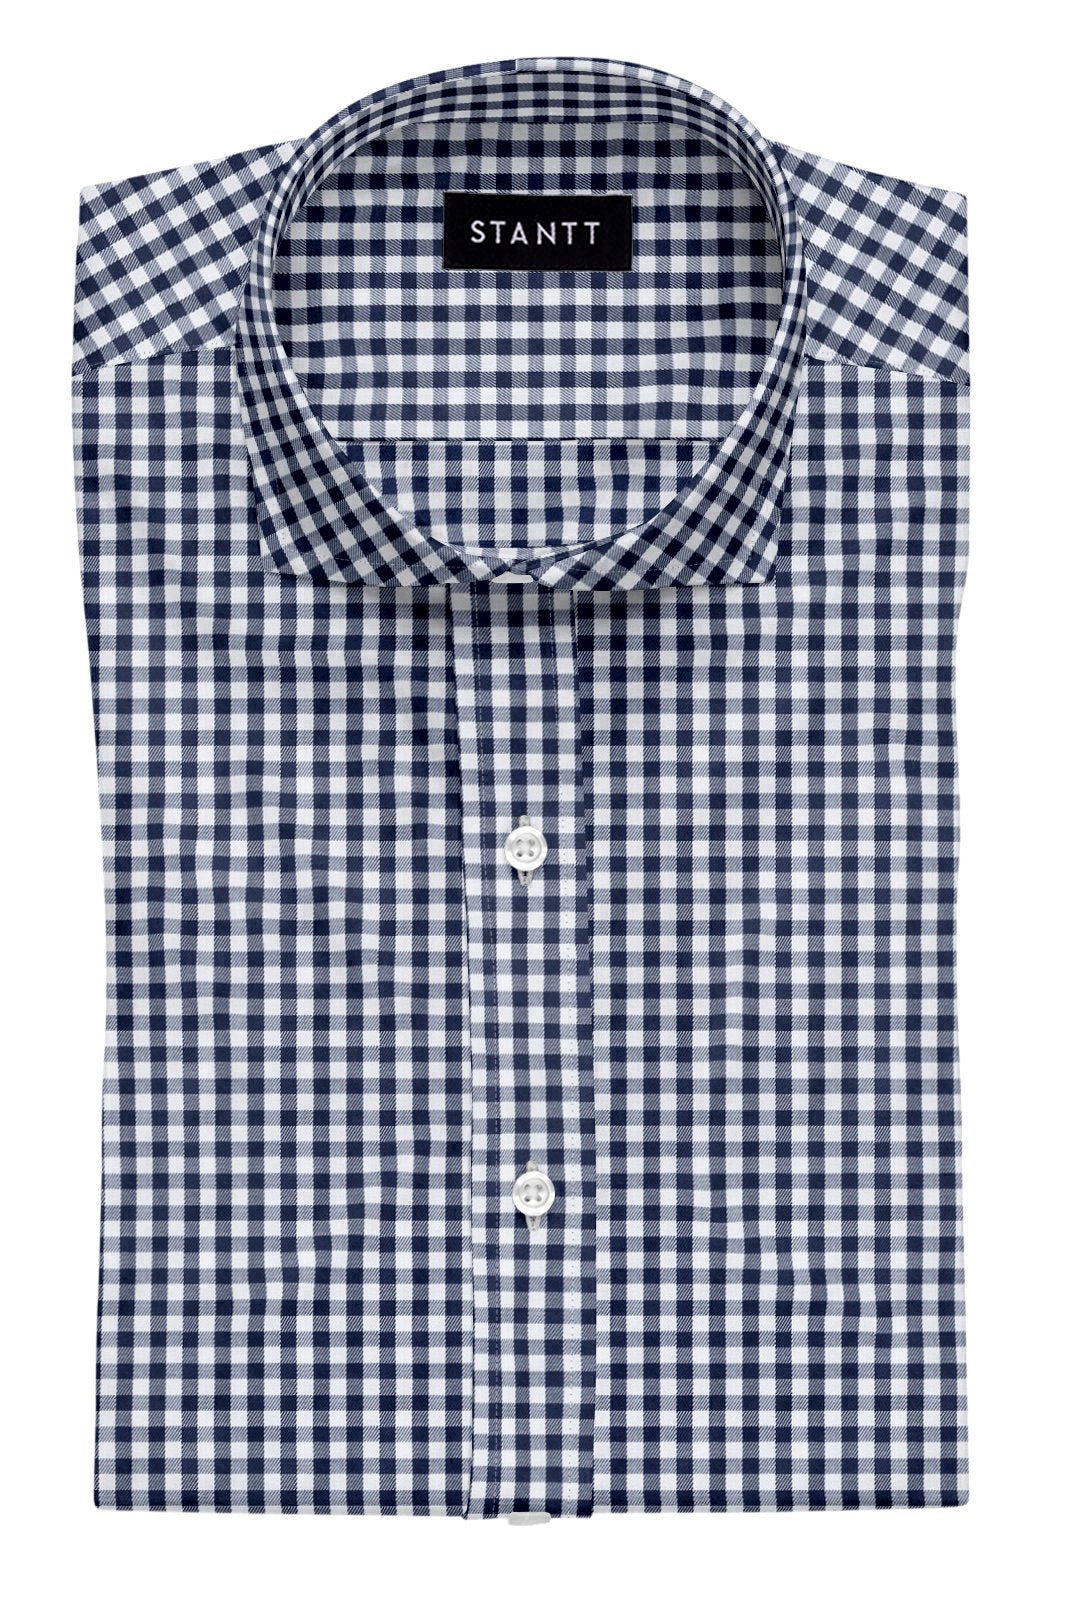 Navy Gingham: Cutaway Collar, Barrel Cuff